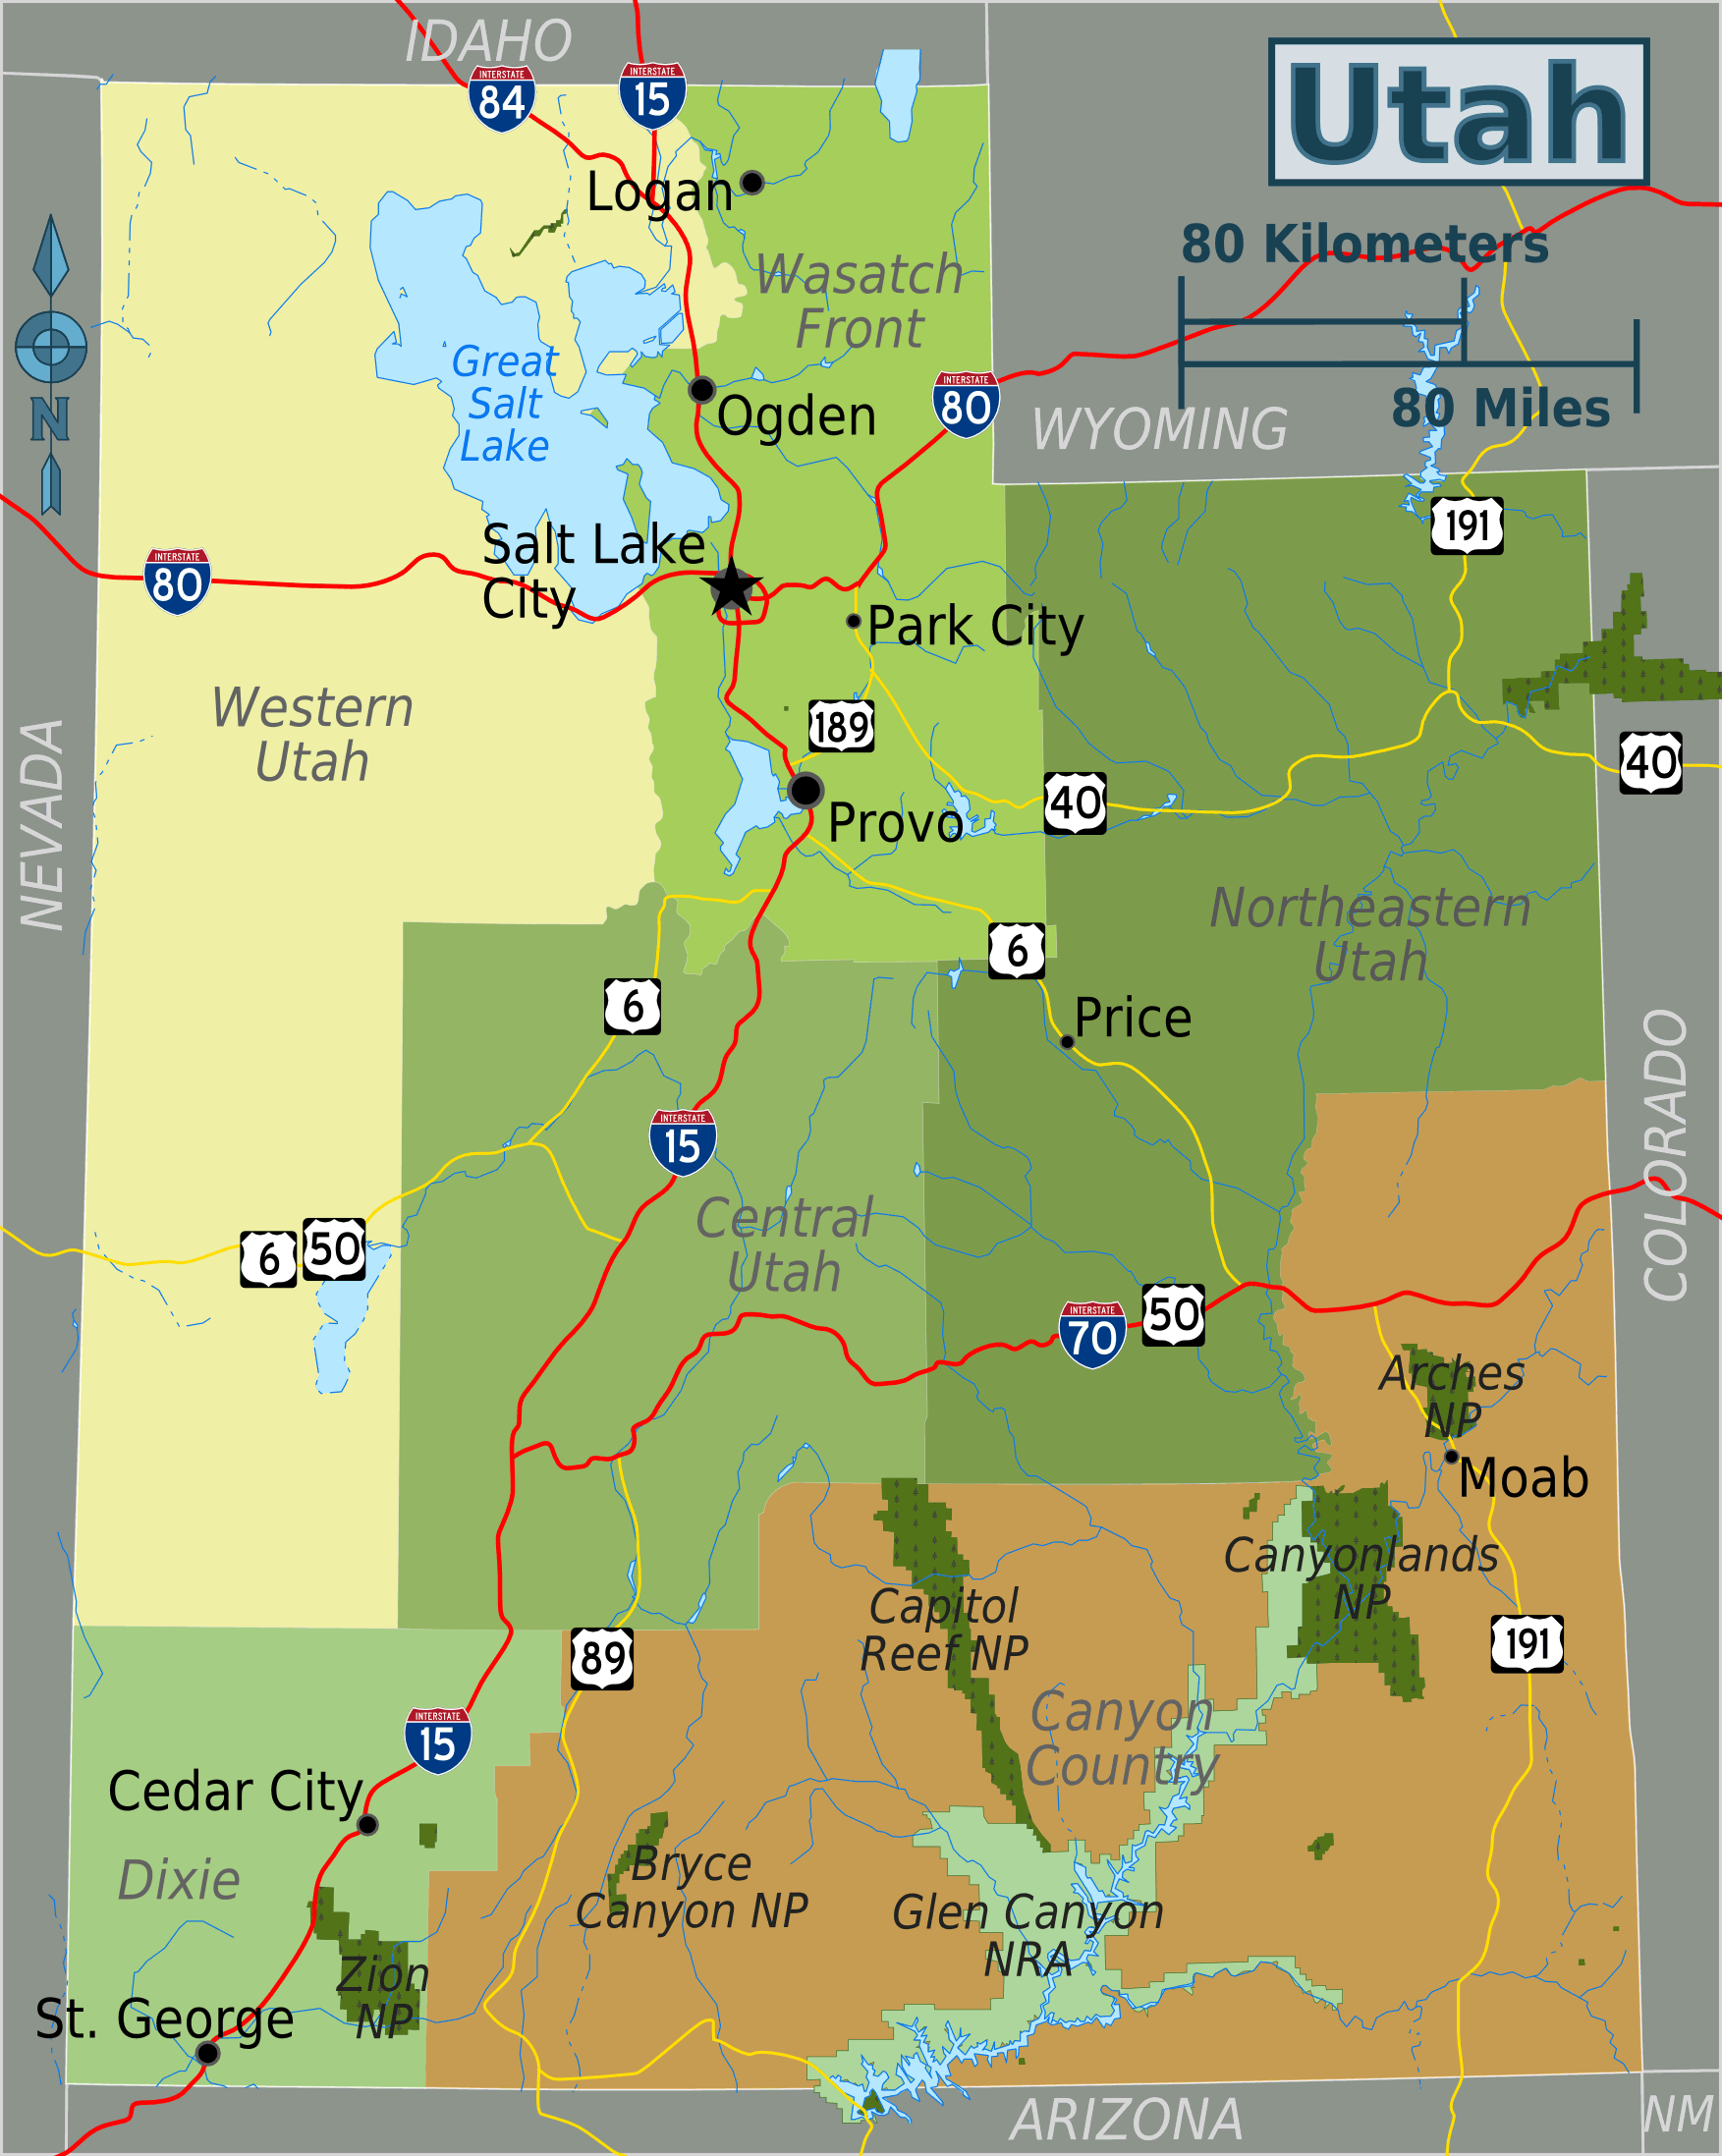 Utah Regions Map • Mapsof.net